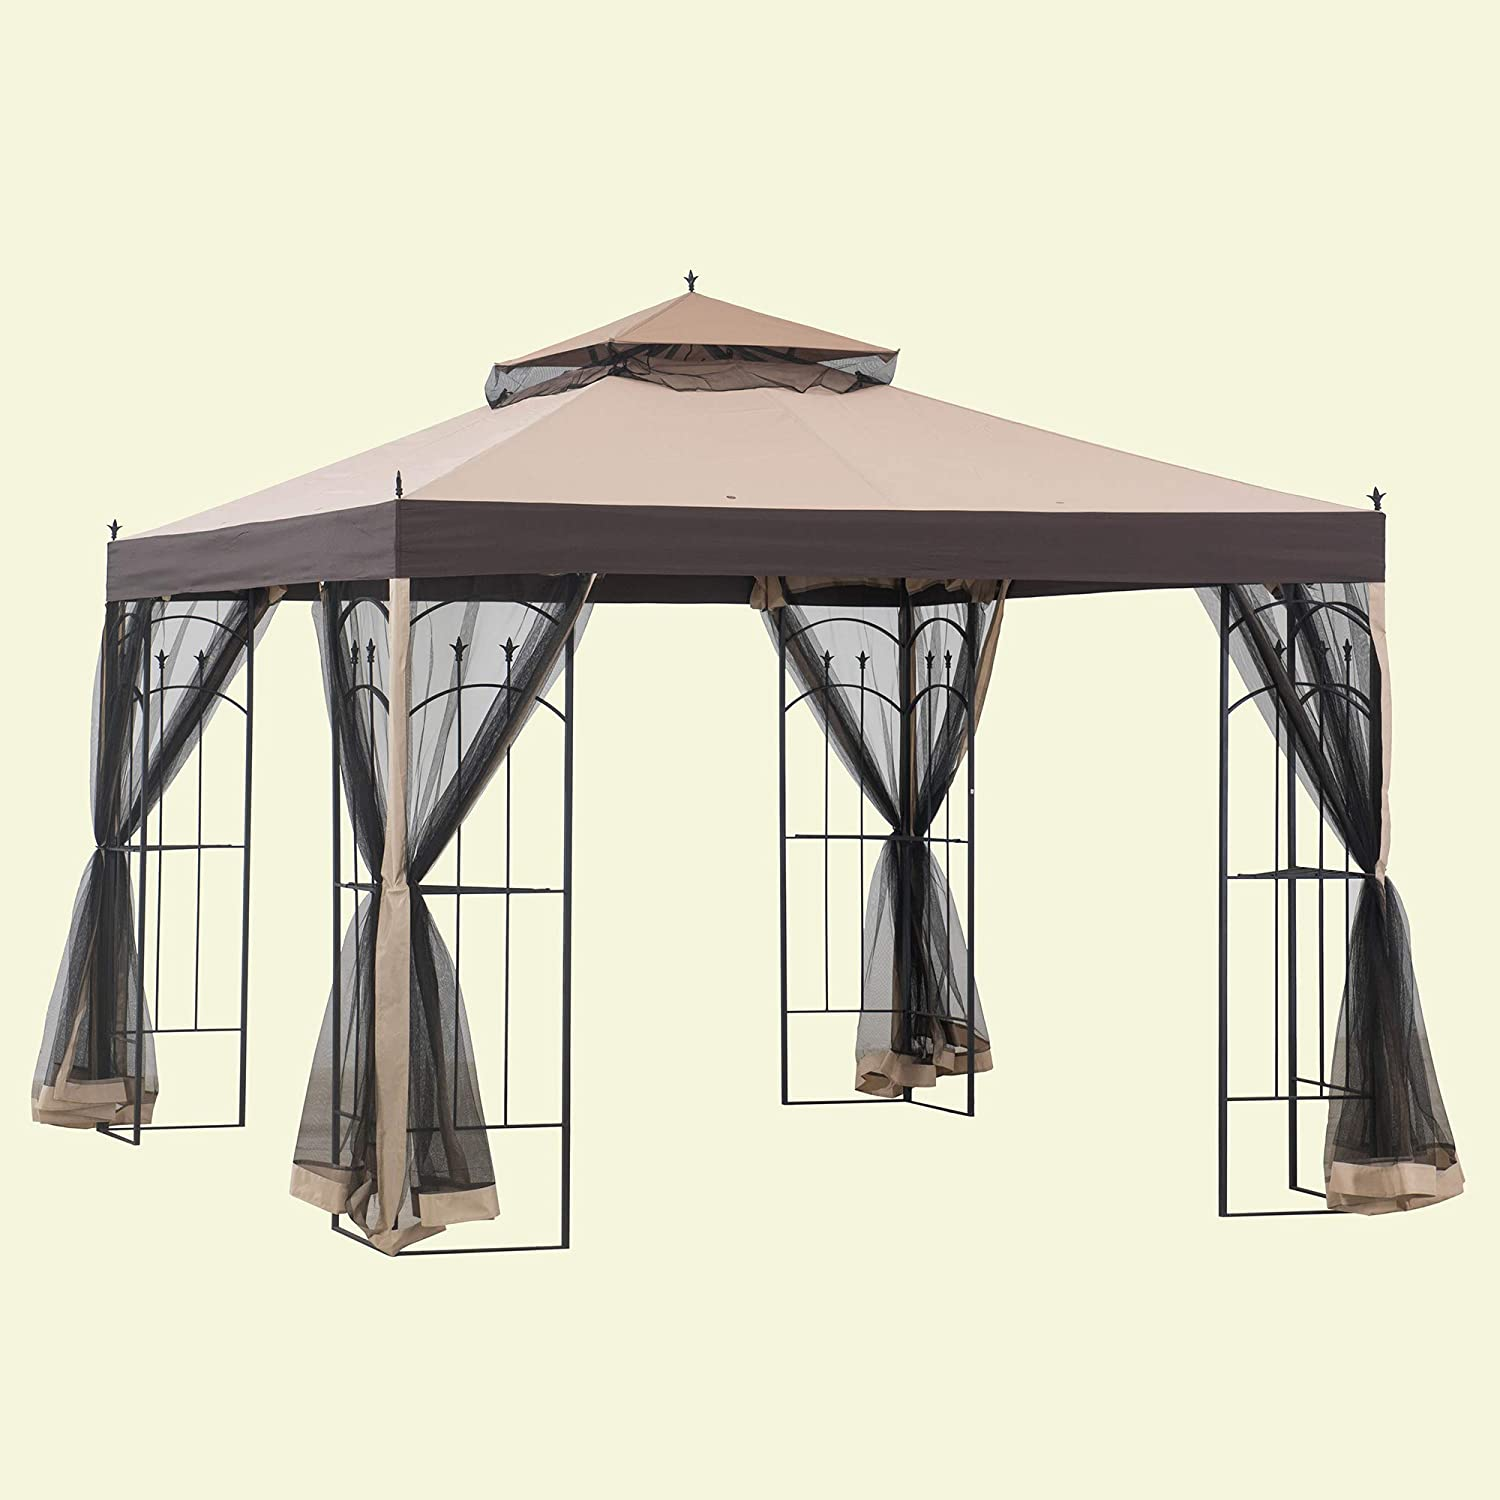 Sunjoy Replacement Mosquito Netting for Arrow Gazebo